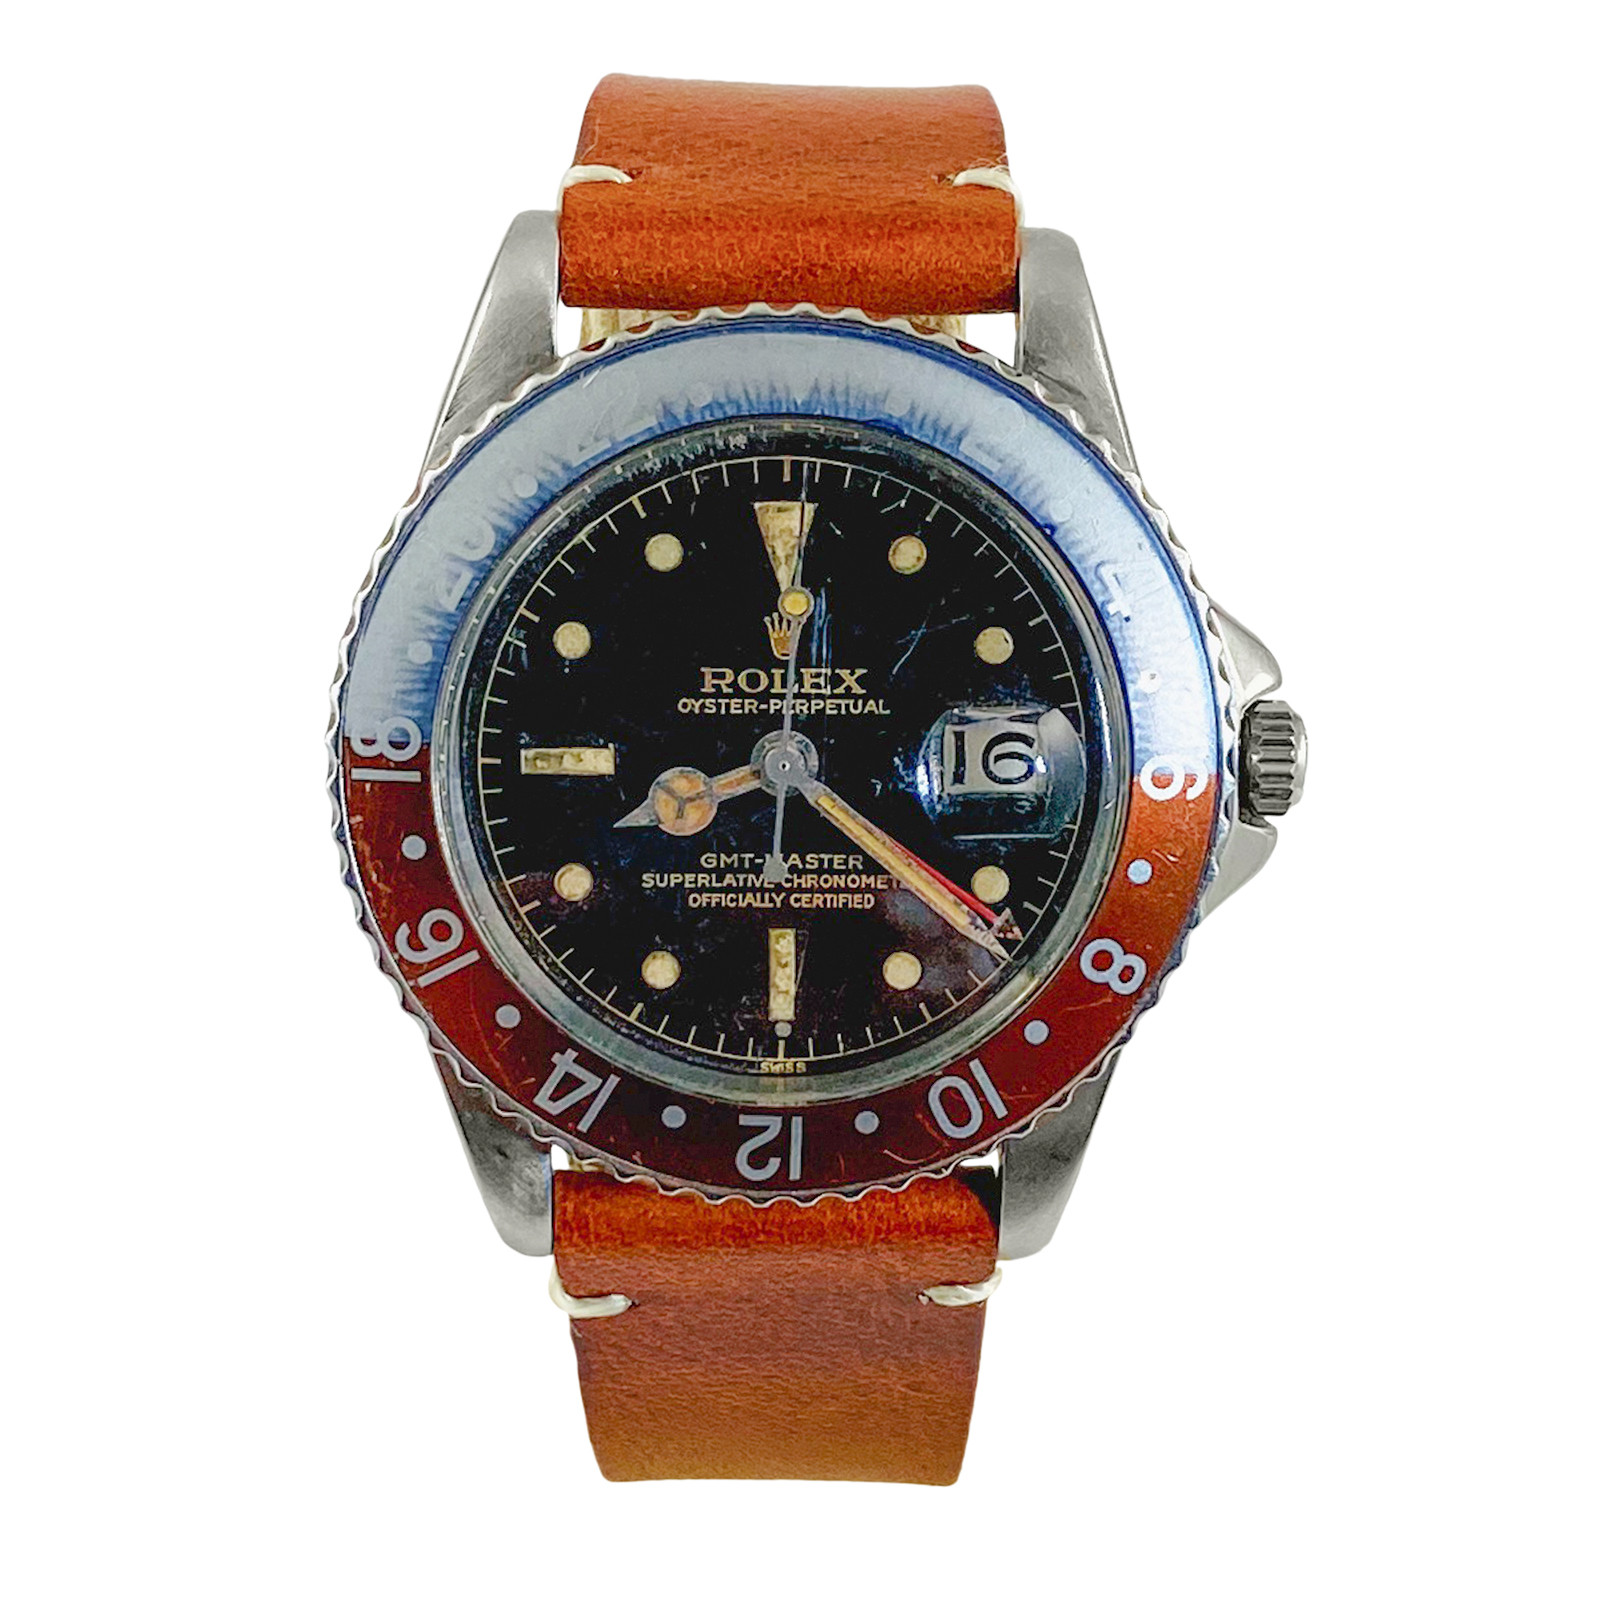 Rolex GMT-Master Ref. 1675 Exclamation Dial 1960 With Certificate